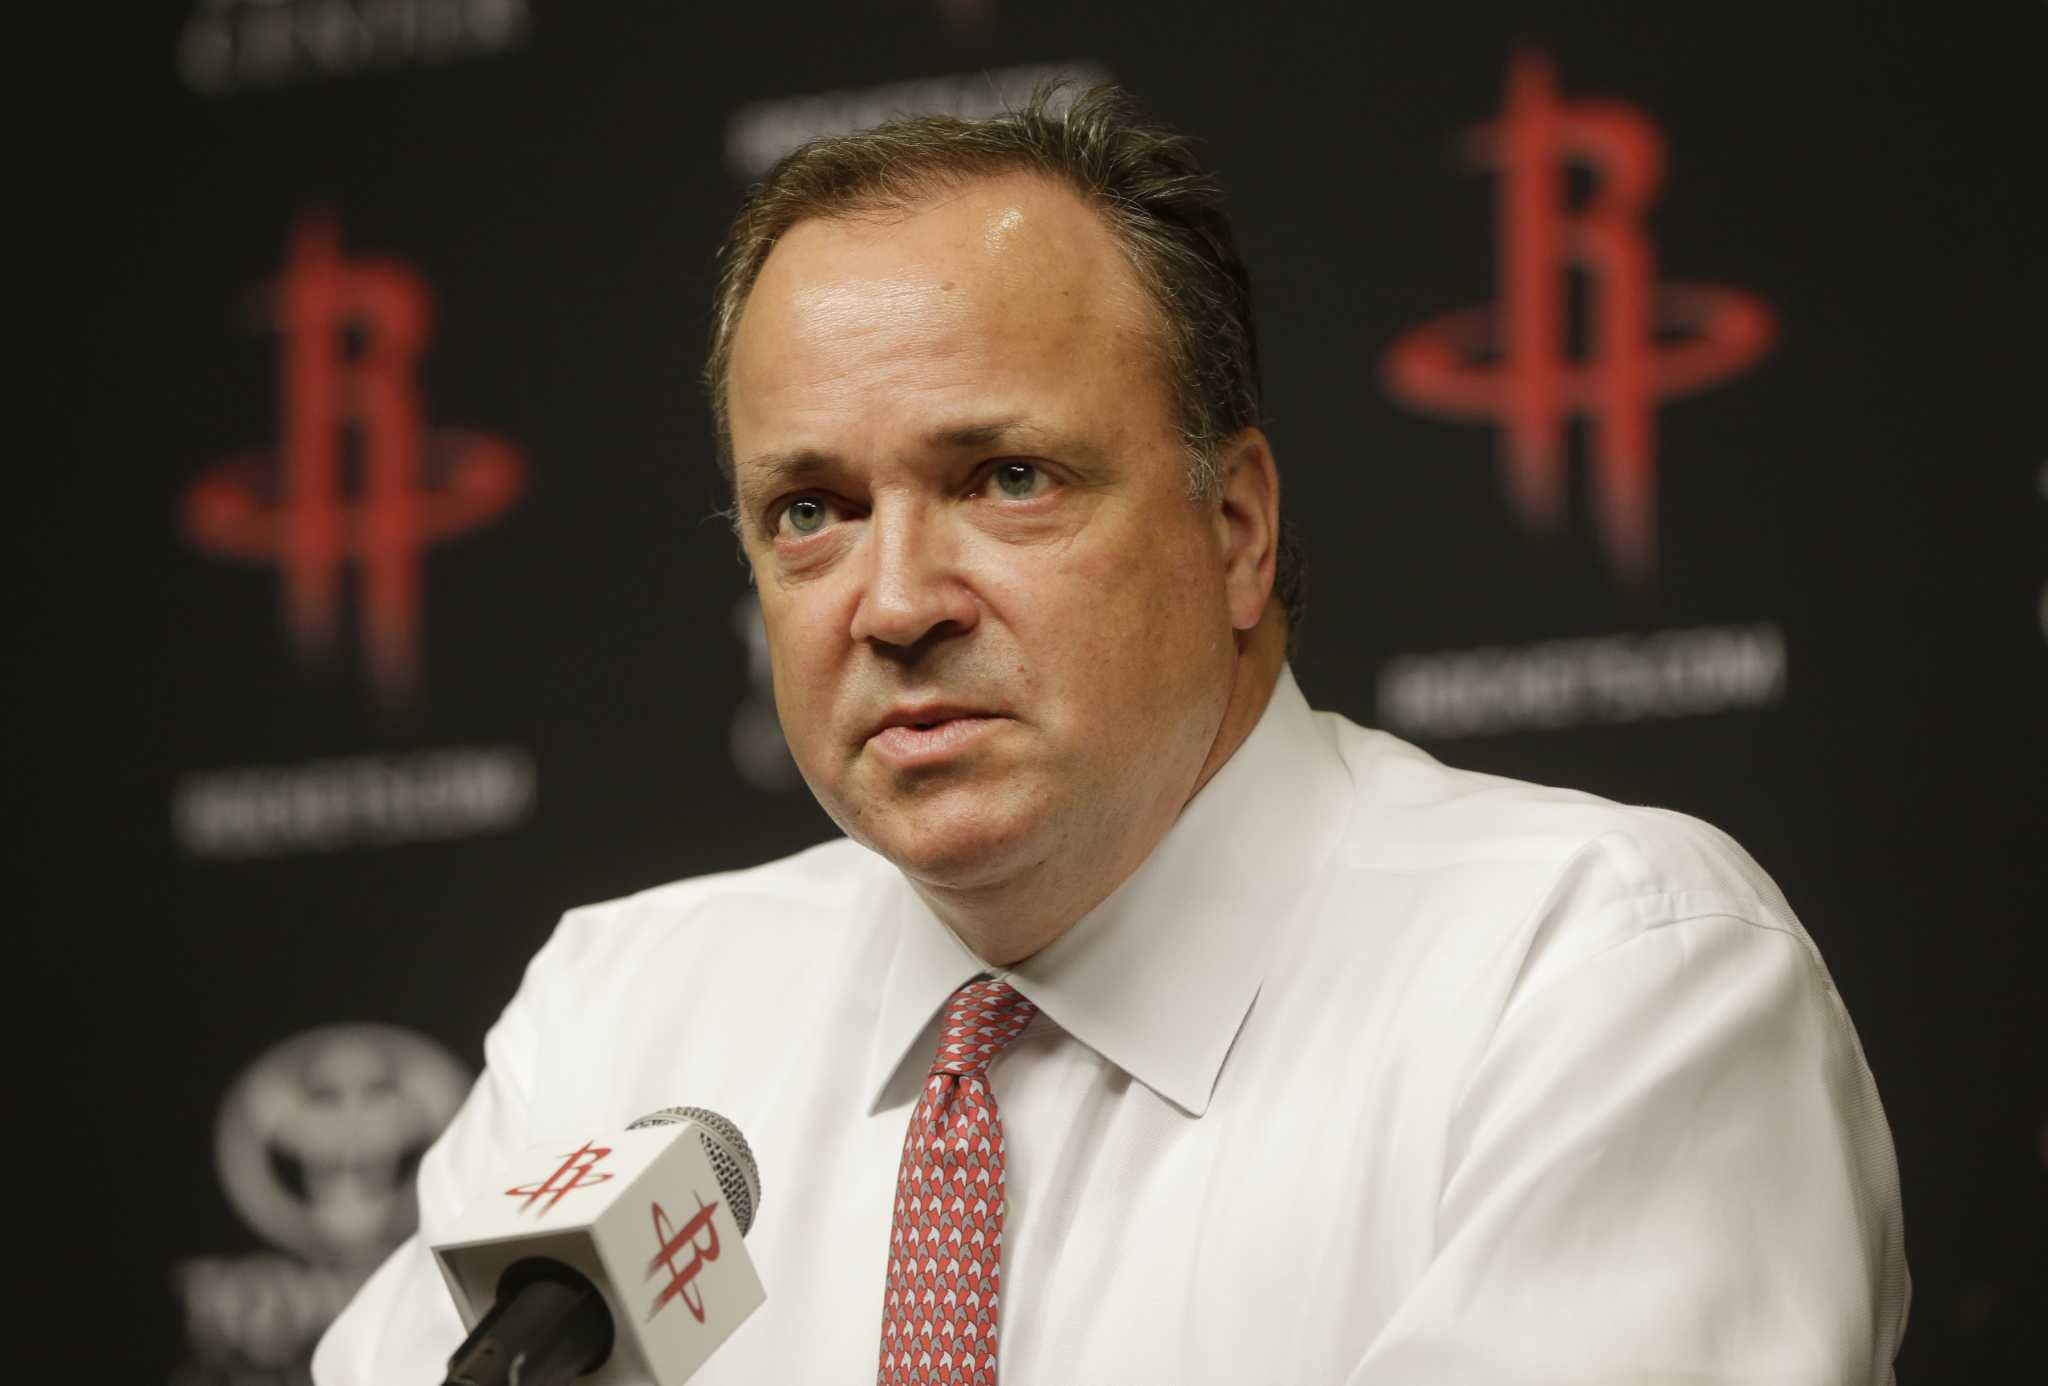 Former Rockets' Executive Tad Brown Joining 76ers As CEO